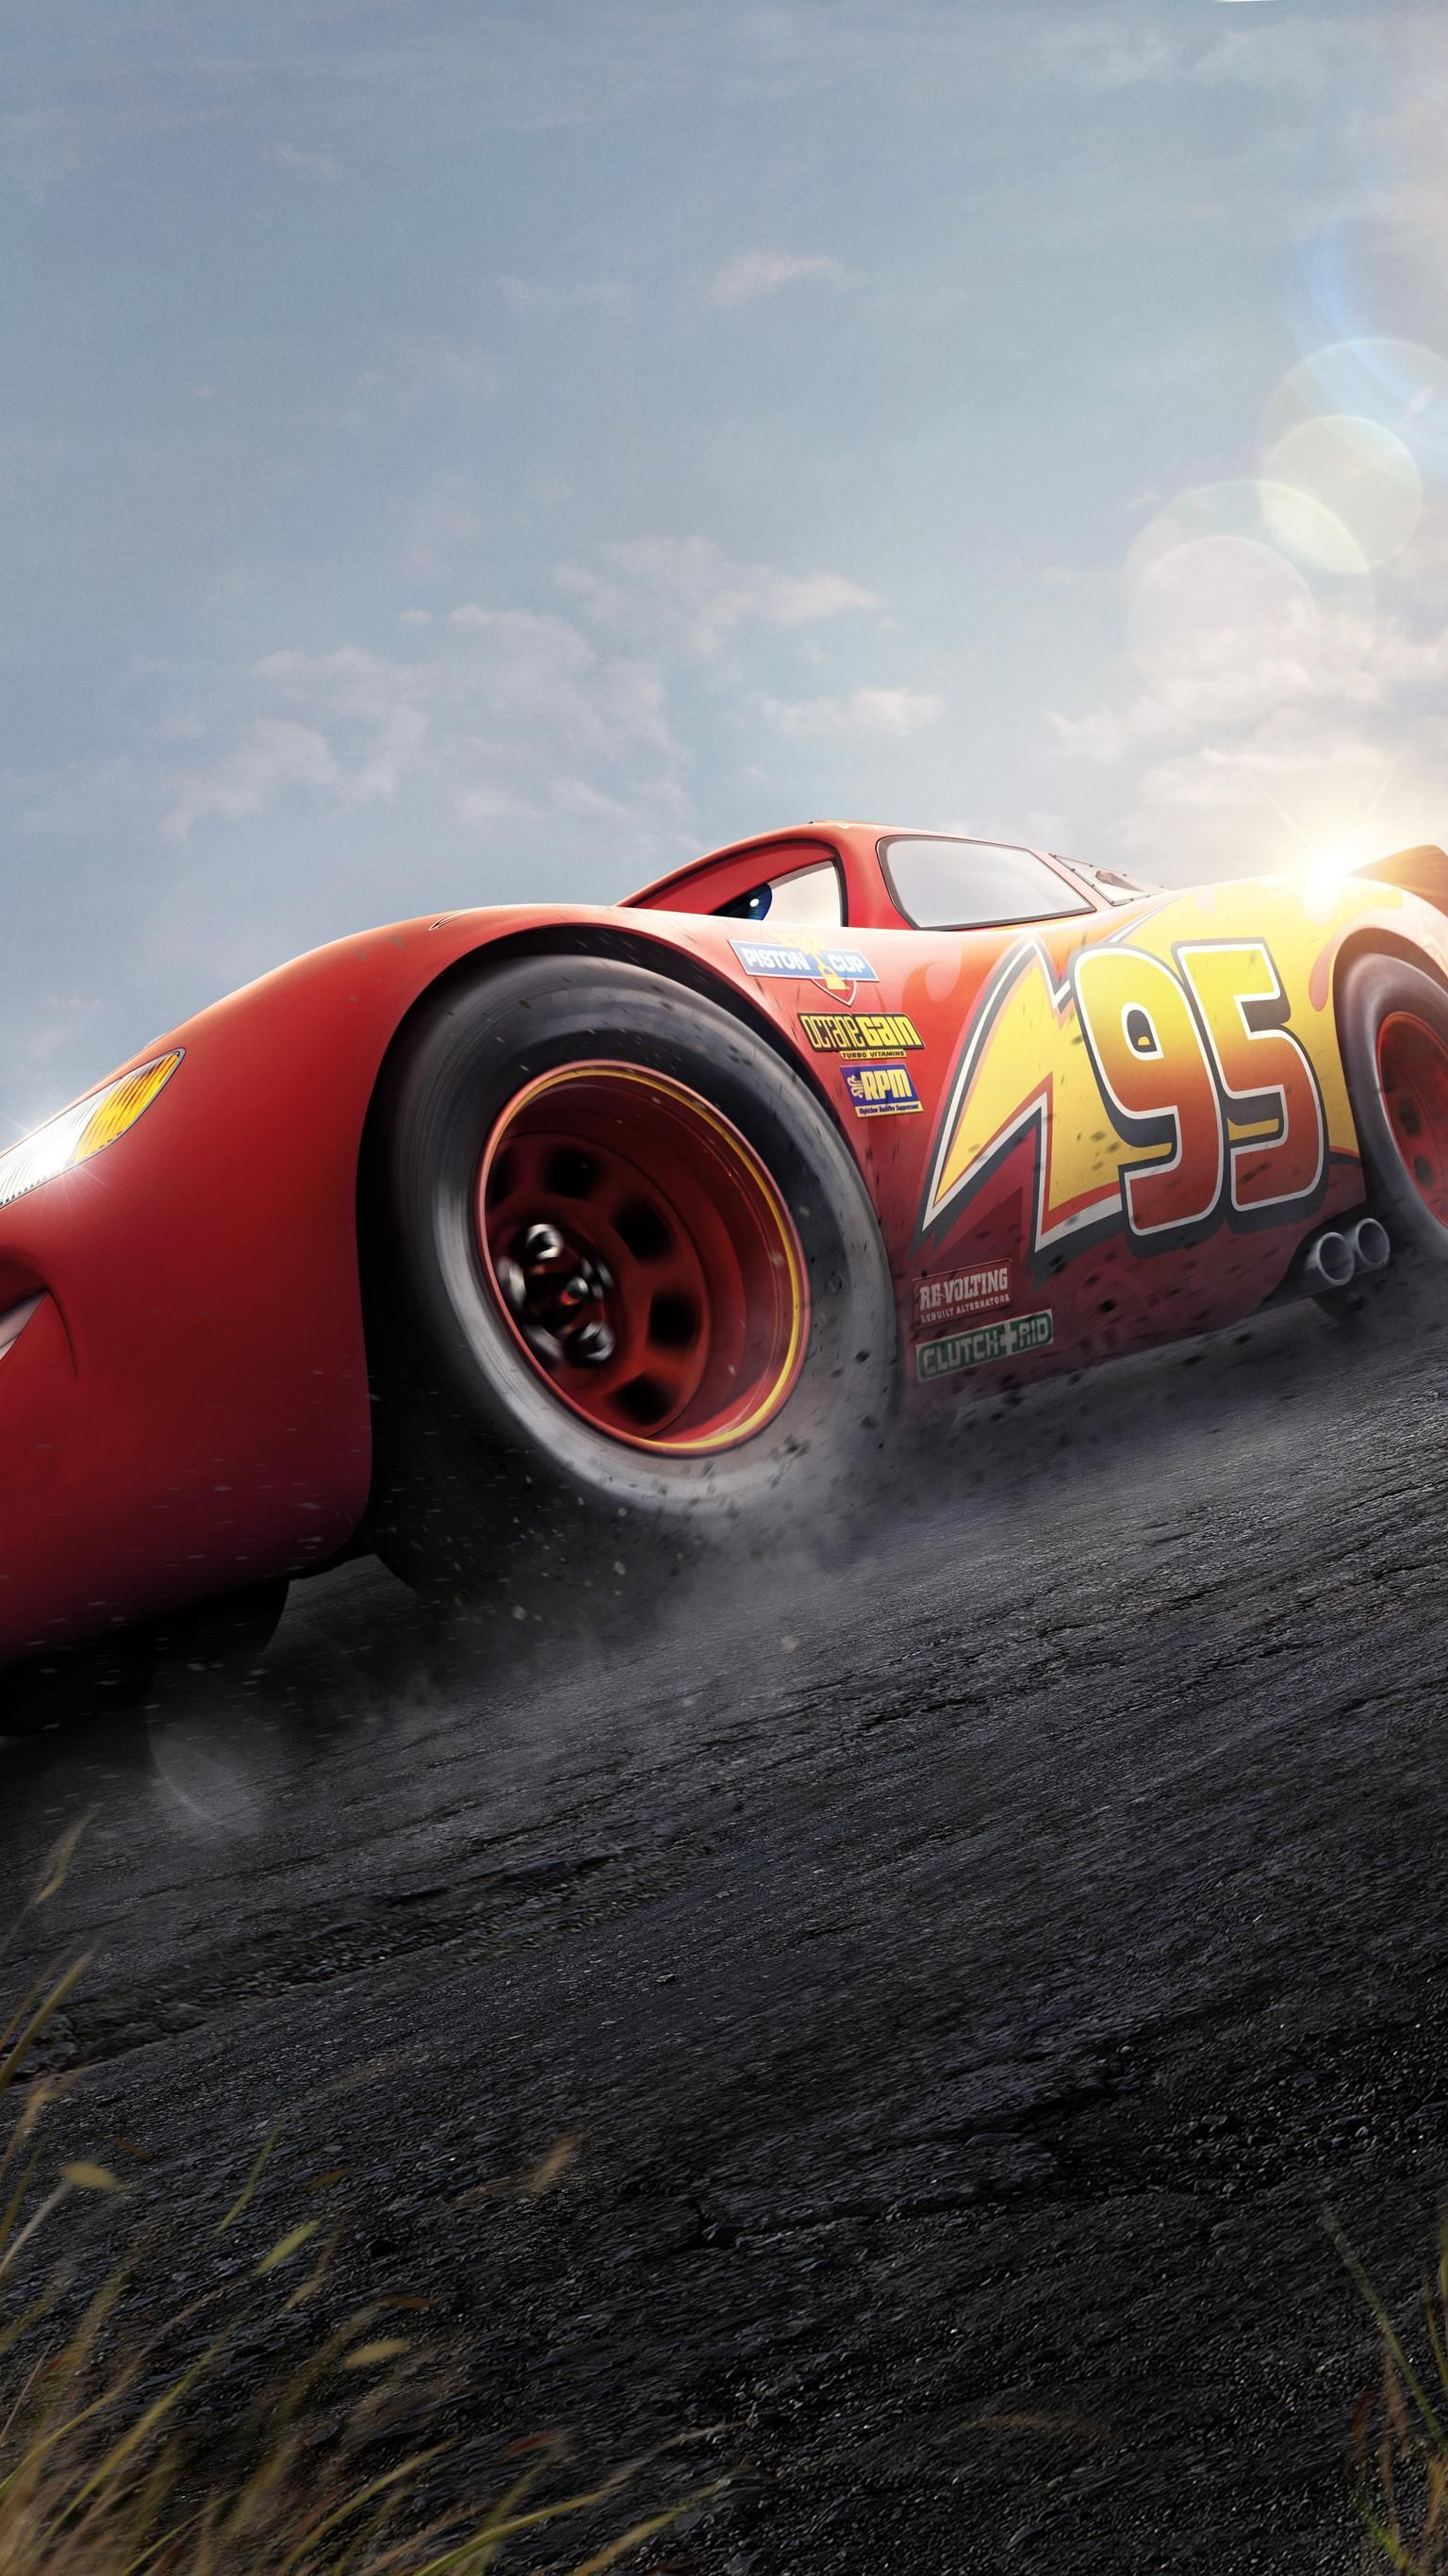 Cars Cartoon Hd Wallpapers Very Beautiful Now You Just Click On